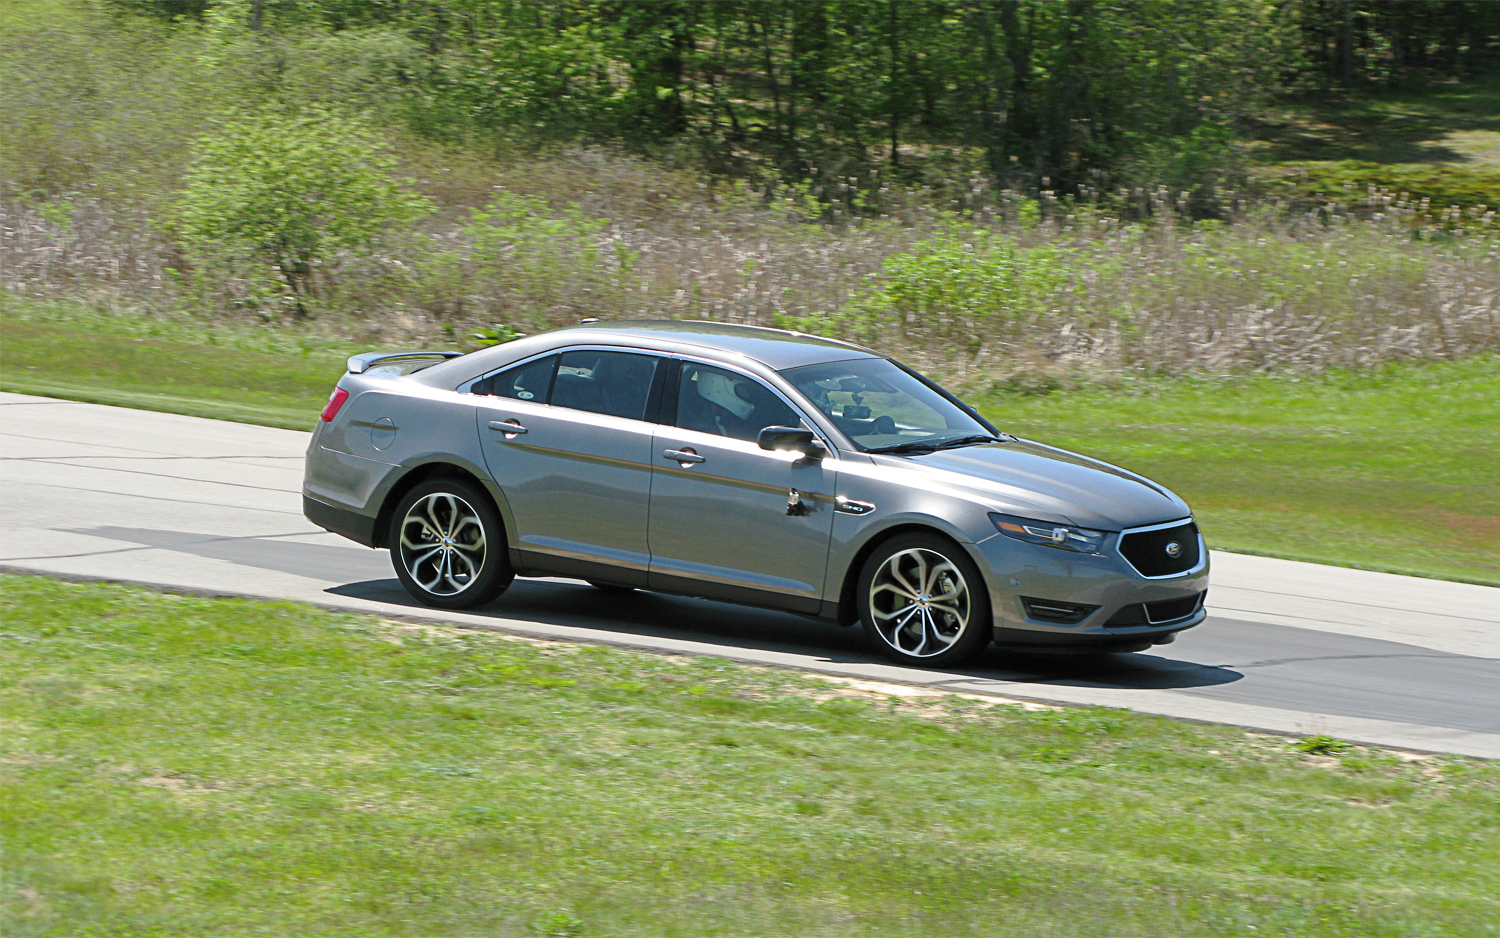 Ford Taurus Sho 0-60 >> 2013 Ford Taurus Sho Performance Package First Test Motor Trend